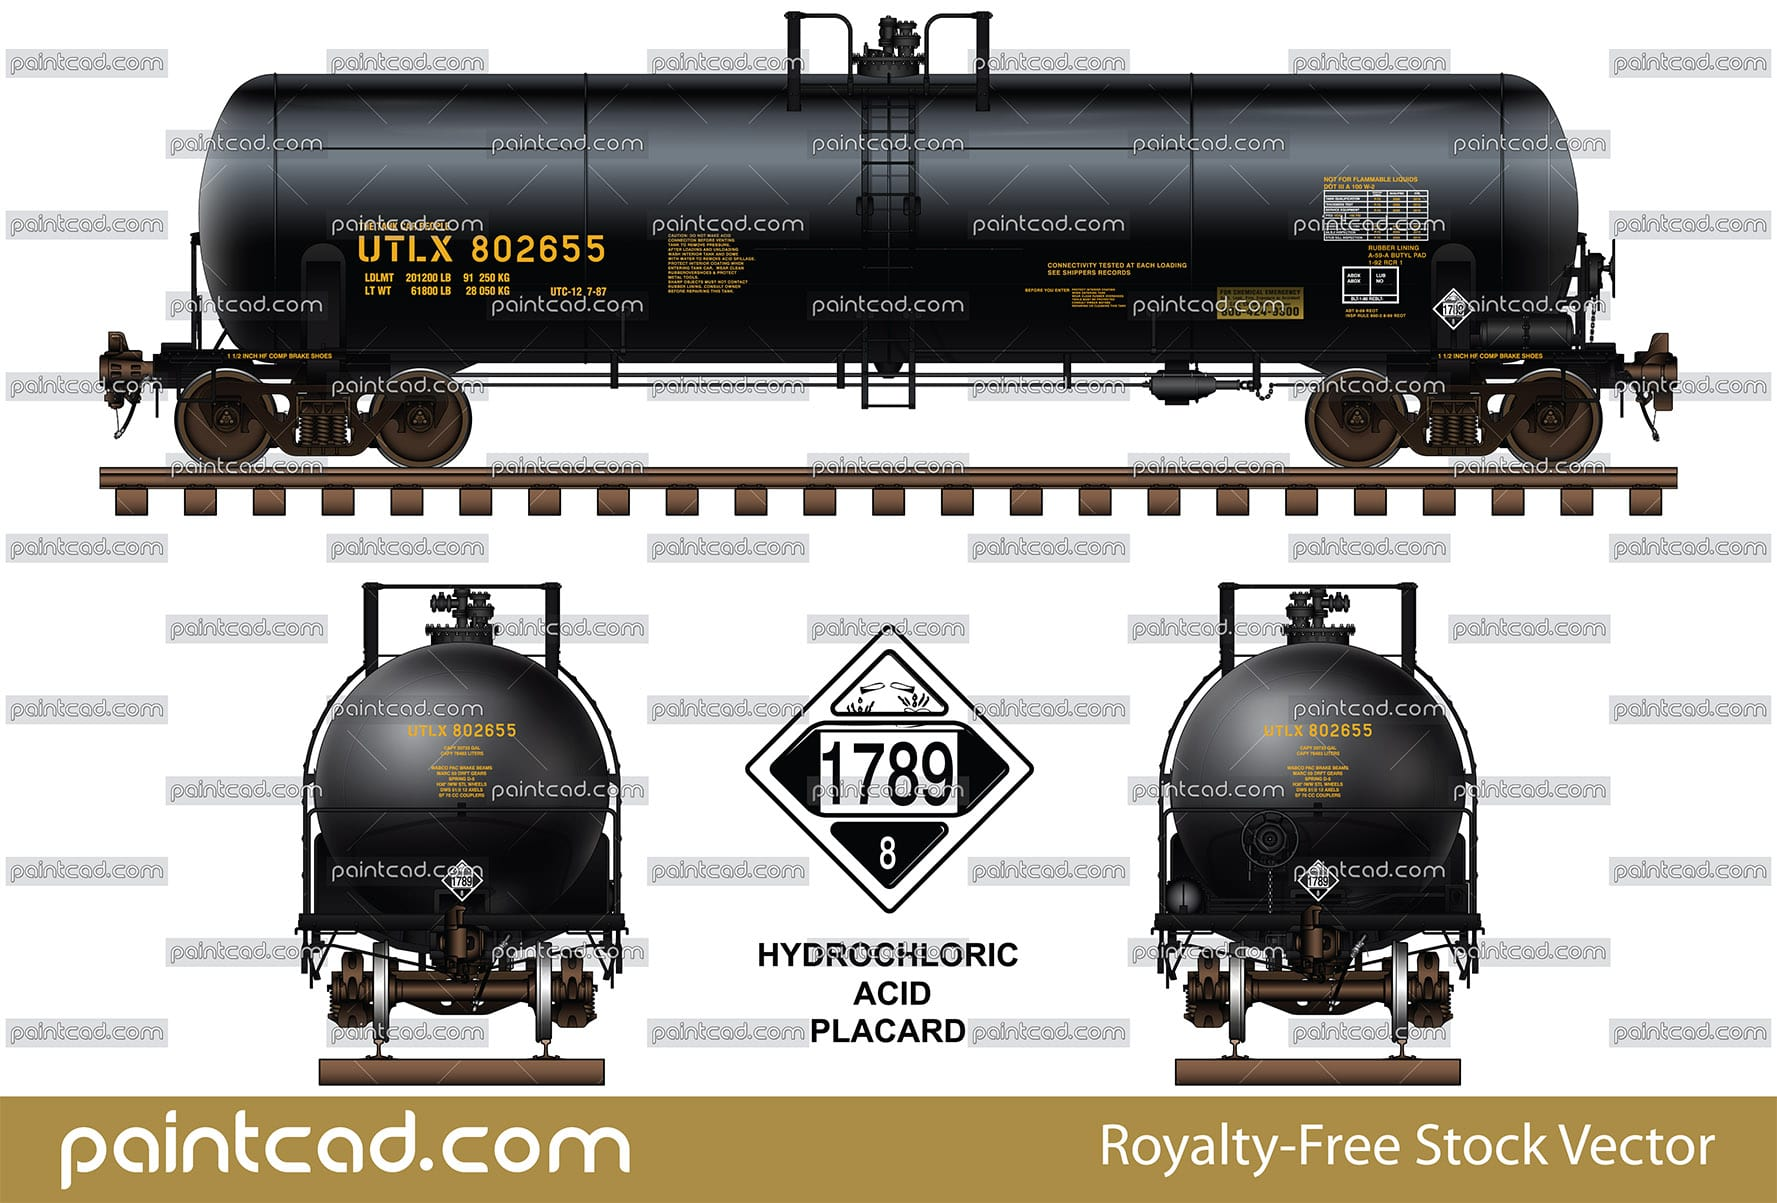 Black tank car DOT-111 with placard 1789 - Class 8 Corrosive - vector illustration